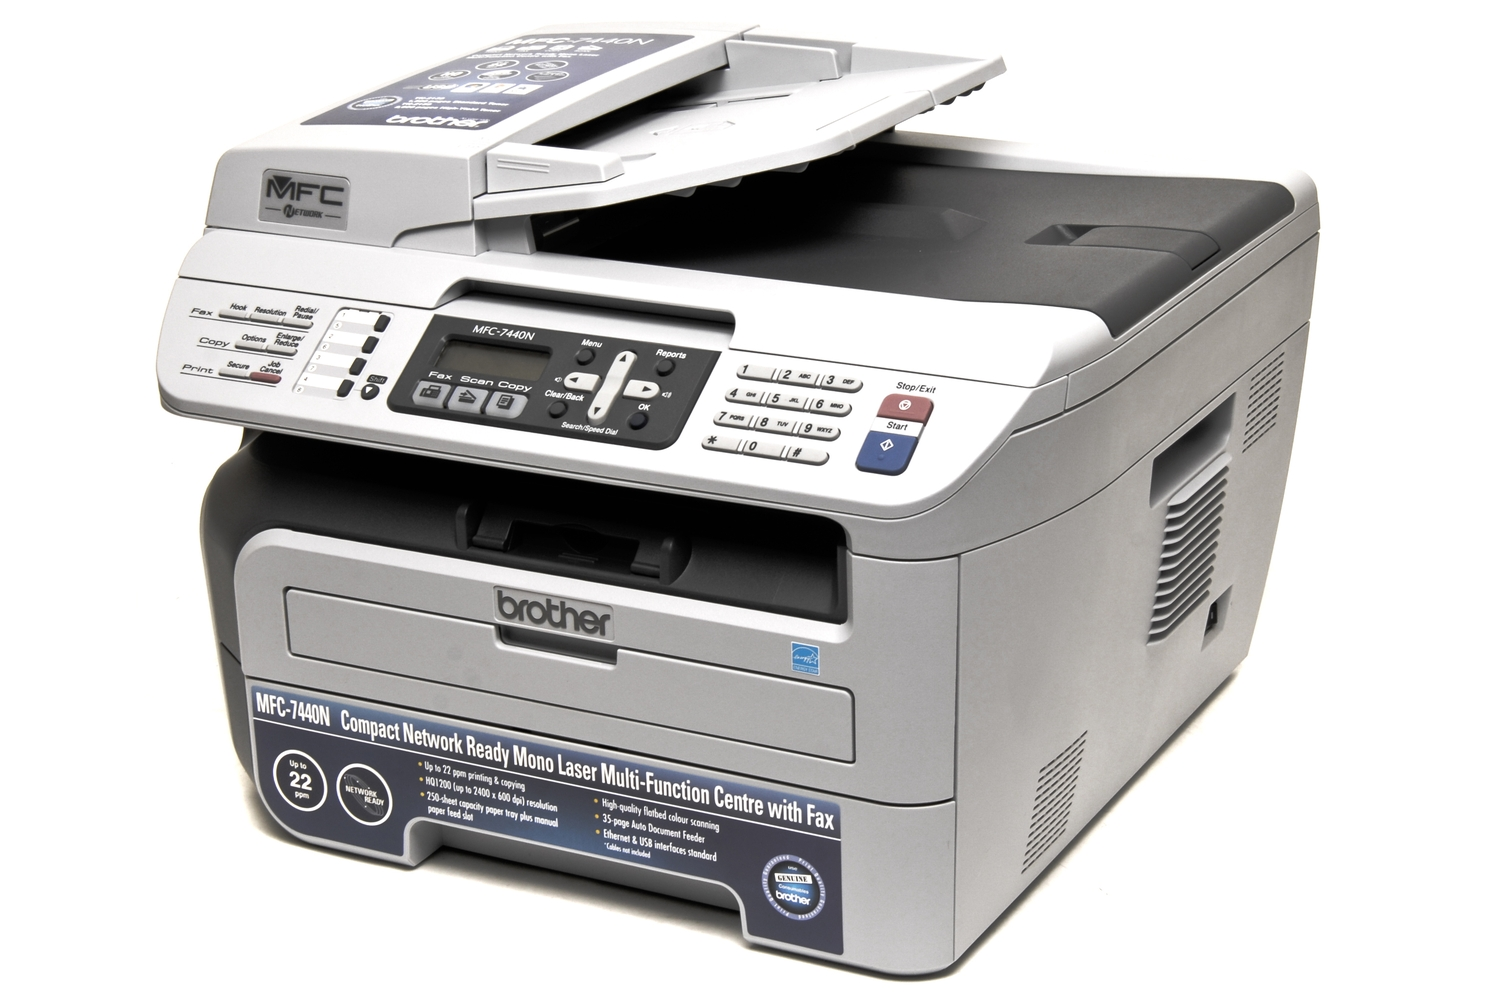 Brother International (Aust) MFC-7440N Review: A step in the right  direction - Printers & Scanners - Multifunction Devices - PC World Australia